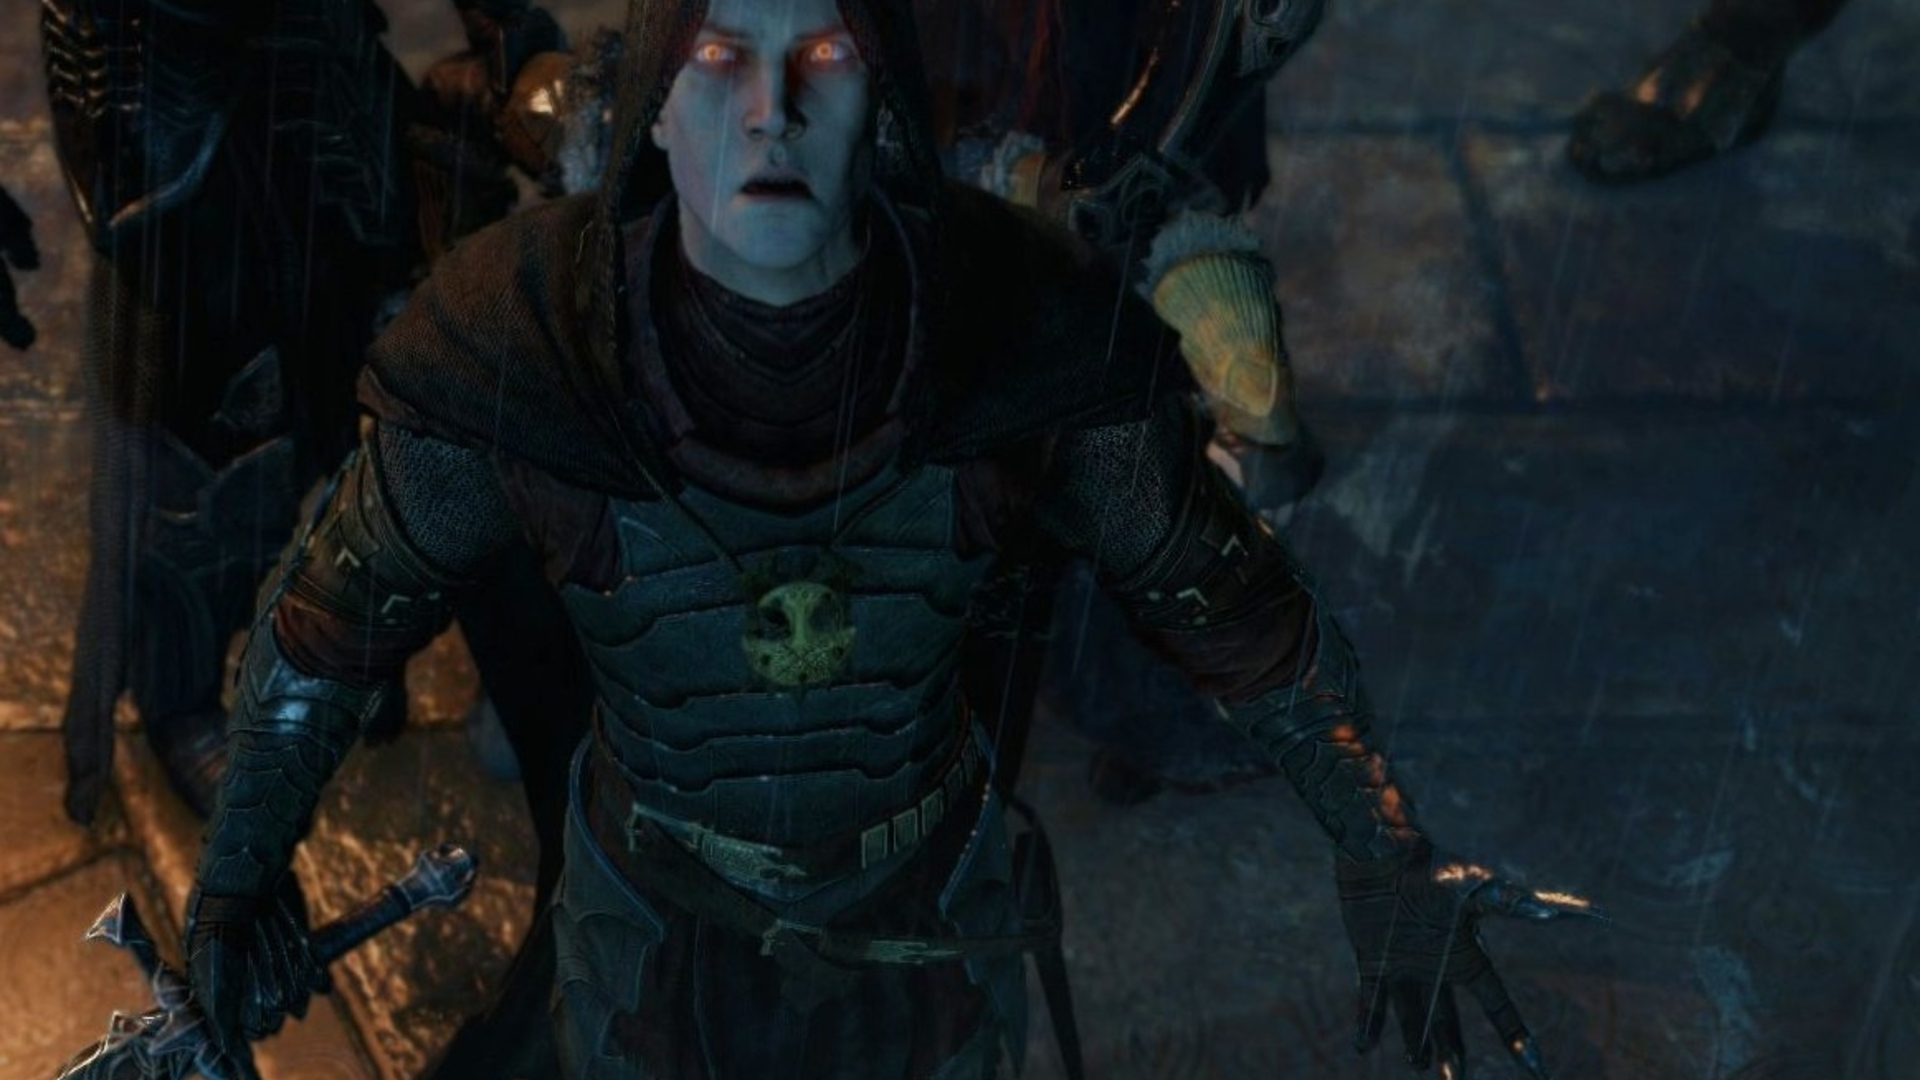 Free Black Hand skin and epic runes in Shadow of Mordor DLC